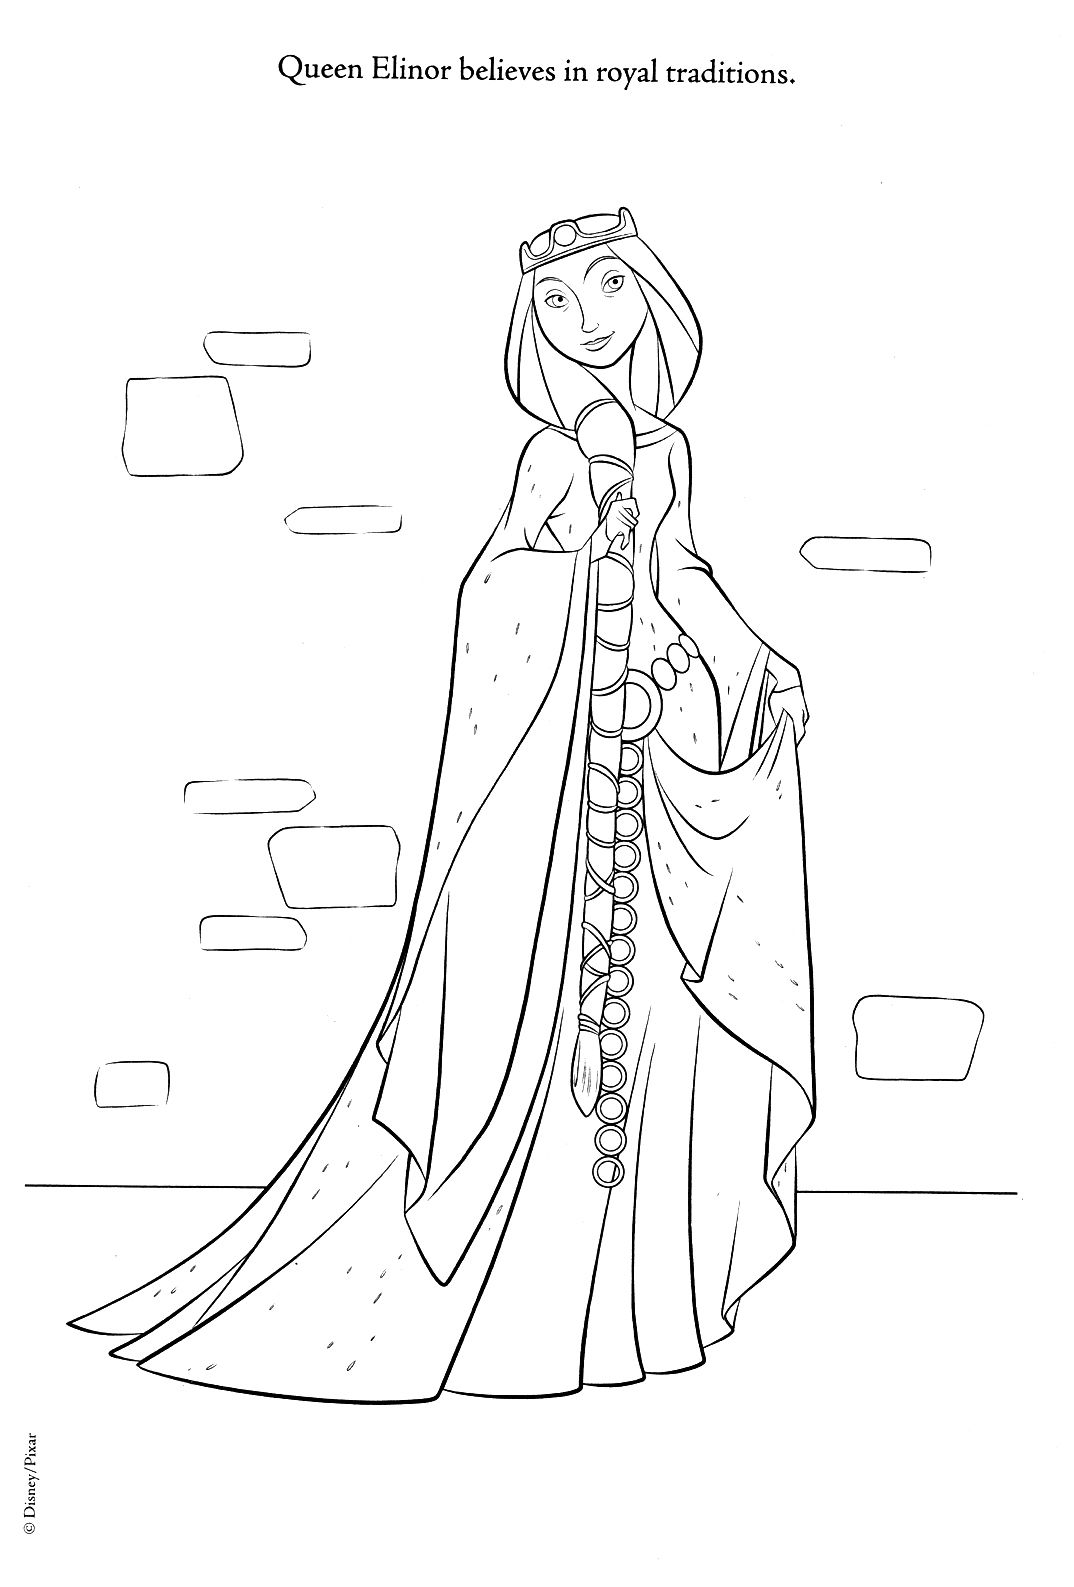 brave coloring pages brave photo queen elinor - Brave Coloring Pages